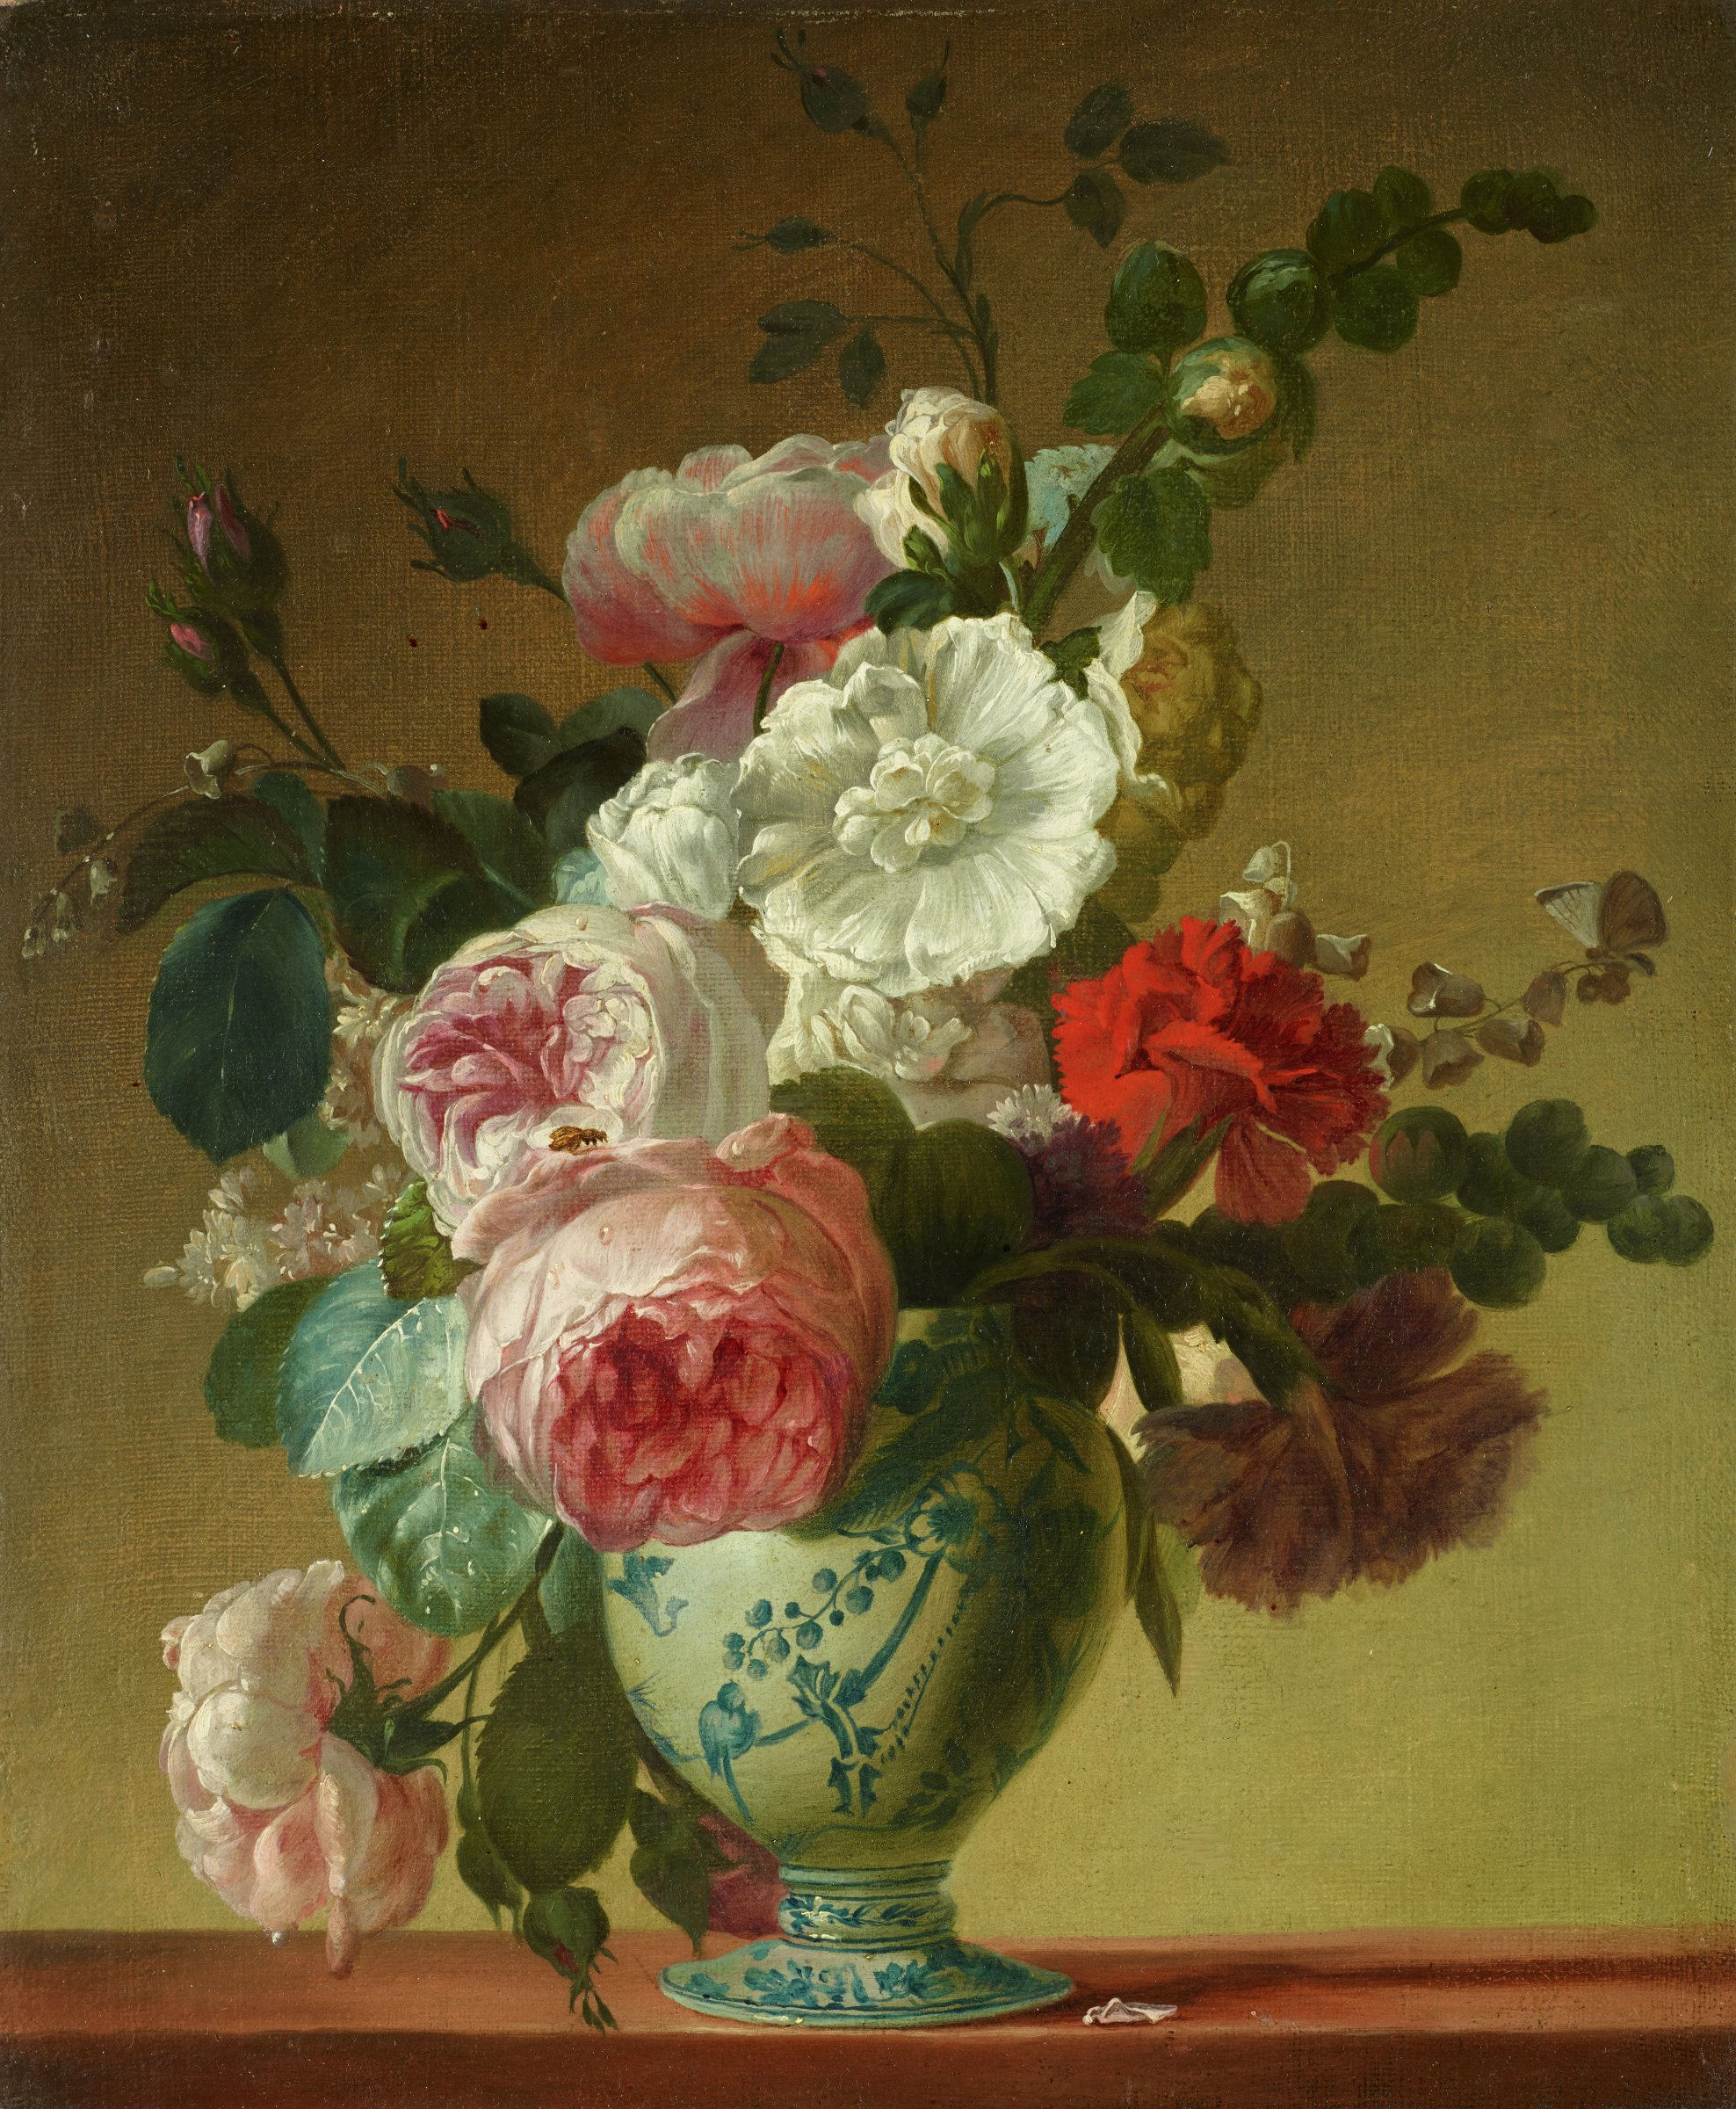 Still life with a bouquet of roses, carnations, hollyhocks, lilacs and other flowers in a blue Delft vase, in contemporary carved and gilded wood frame.